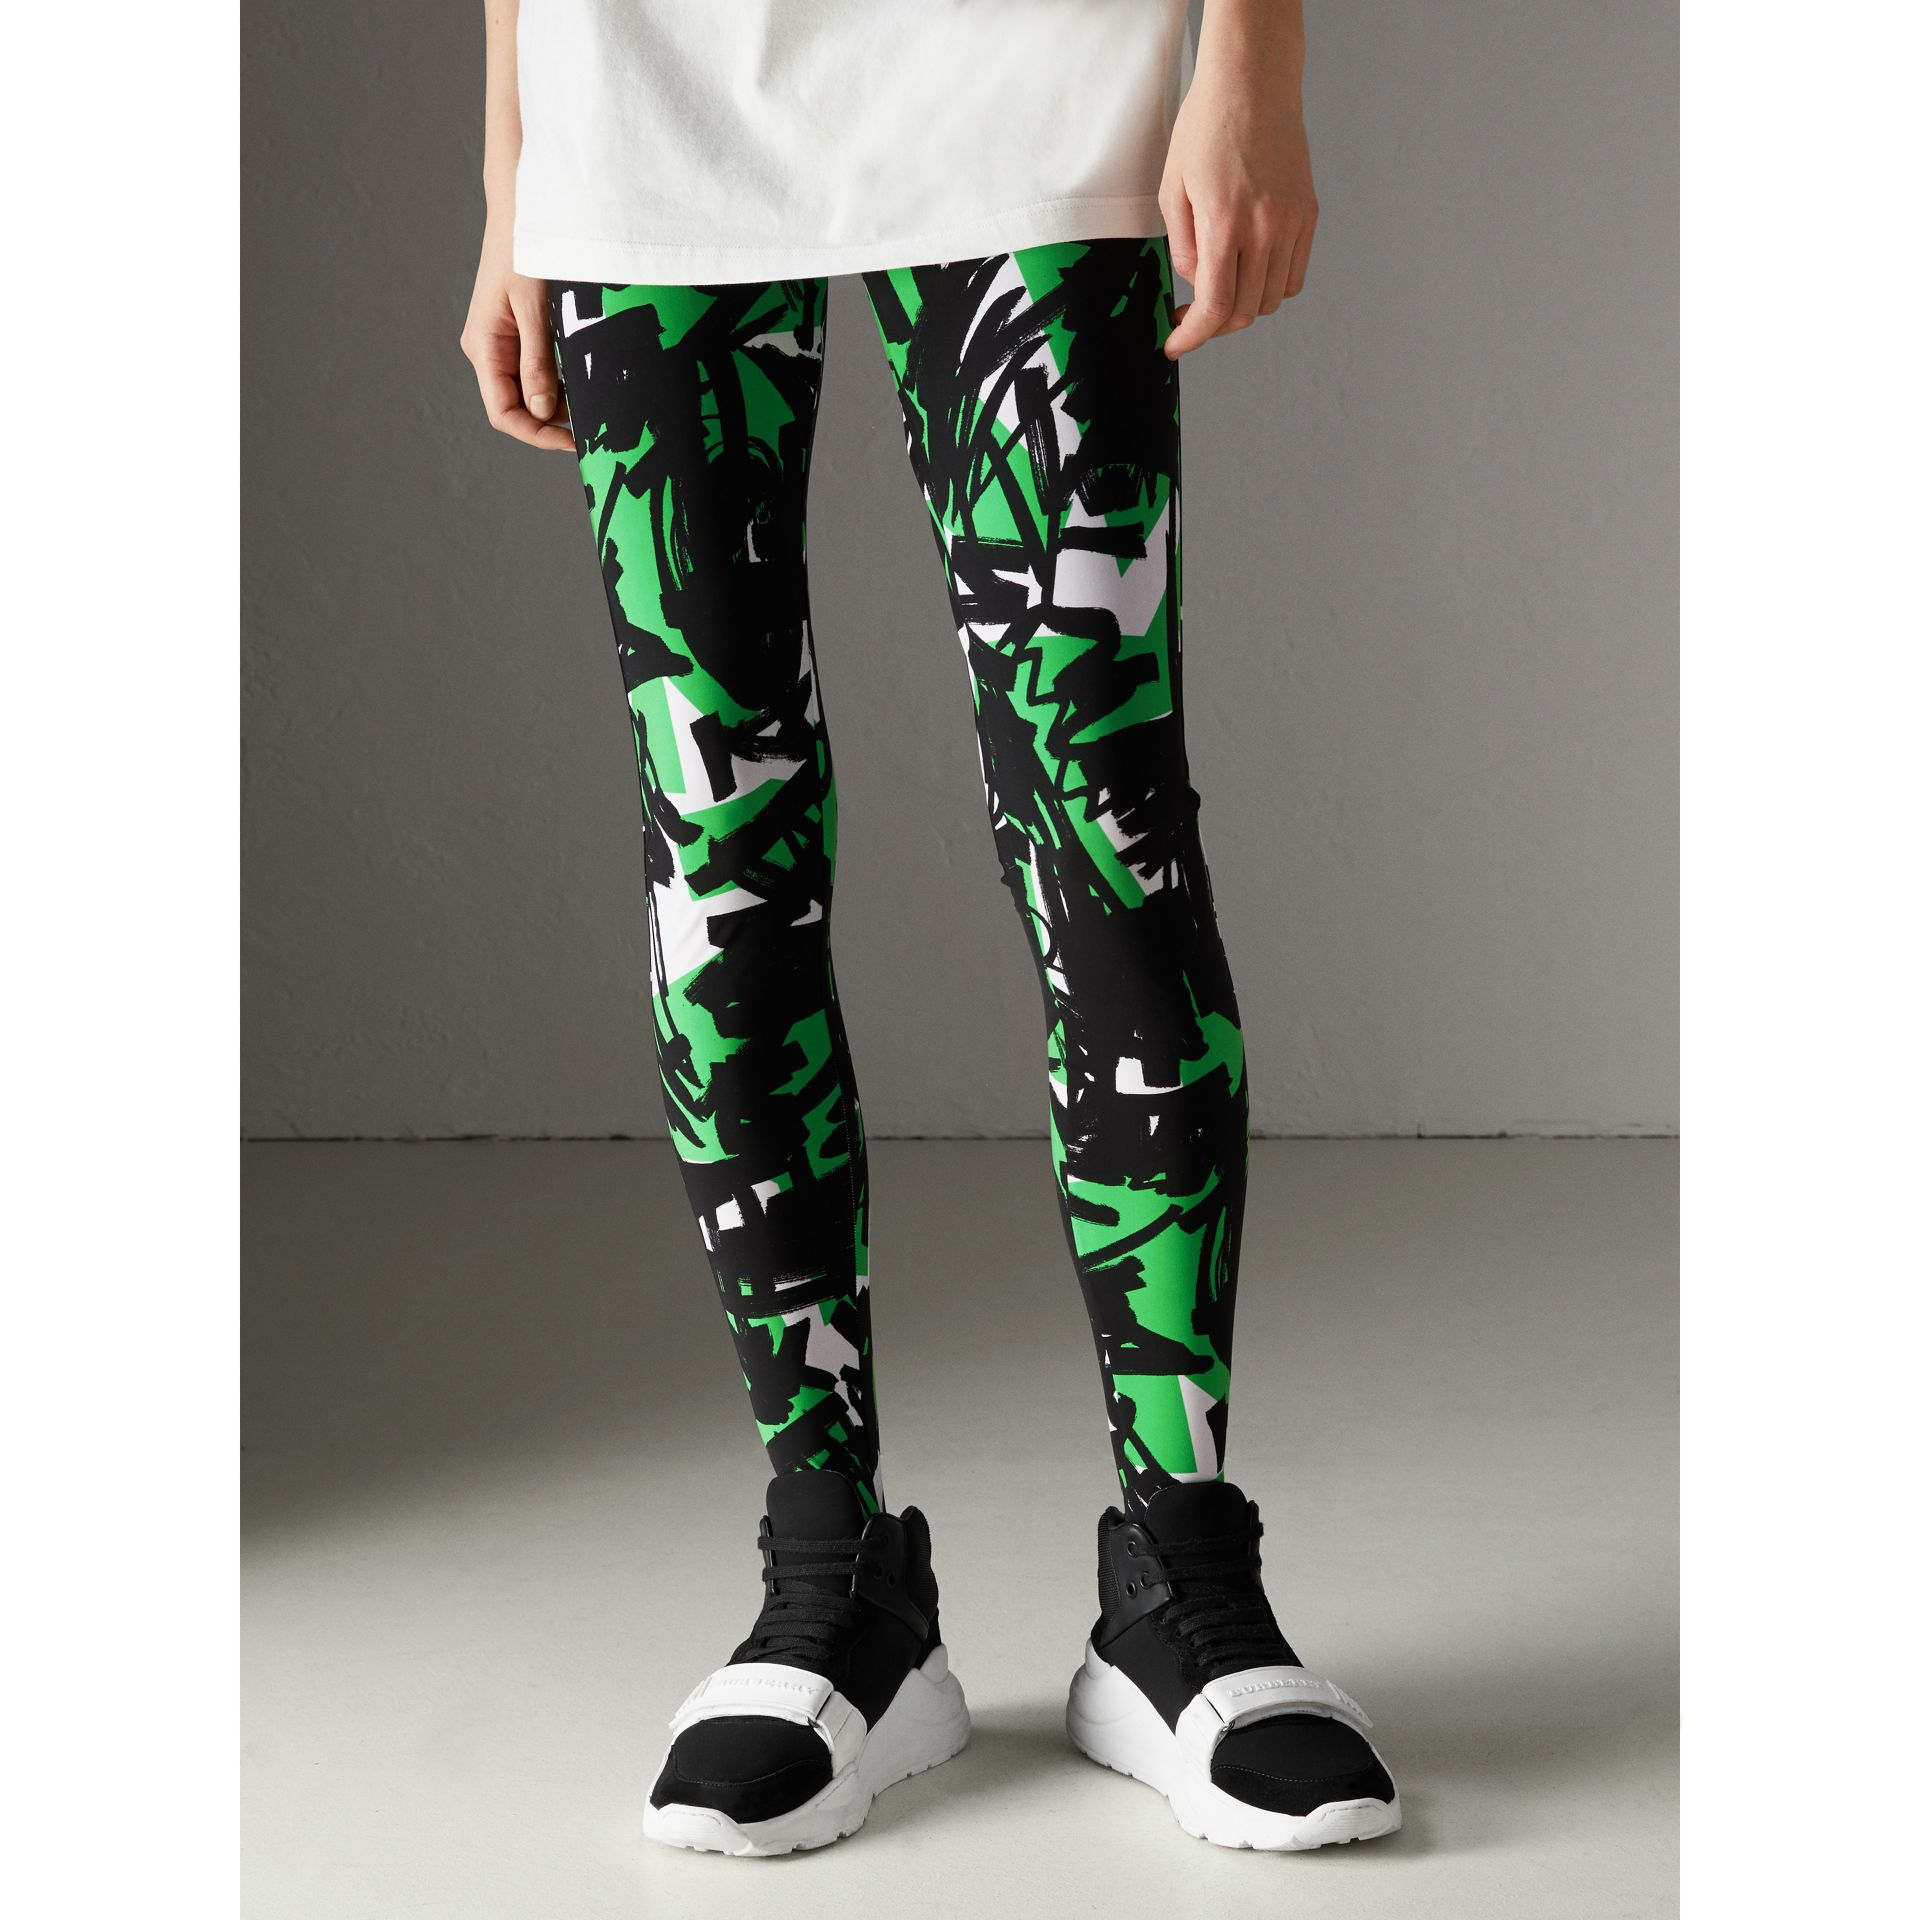 Graffiti Print Leggings in Neon Green - Women | Burberry - gallery image 4